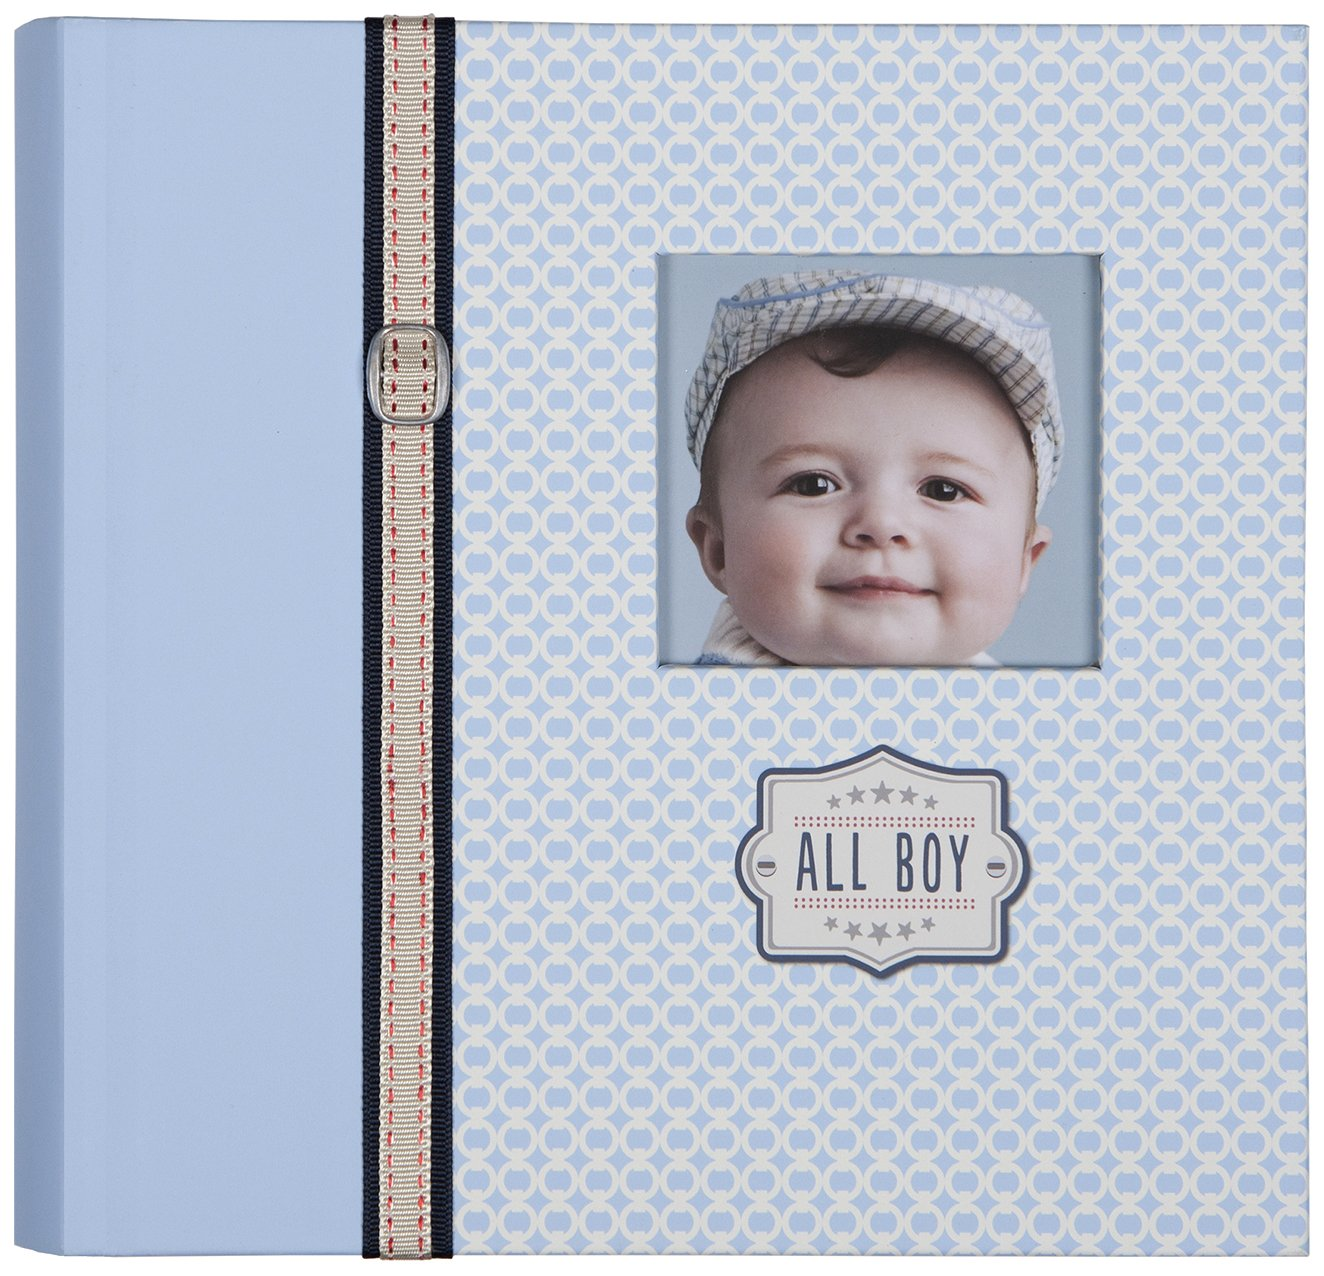 C.R. Gibson Slim Bound Photo Journal Album, Designer Pages, Space For Journaling, Holds 160 Photos, 80 Acid Free PVC Free Photo Safe Pages -All Boy BP1-14076